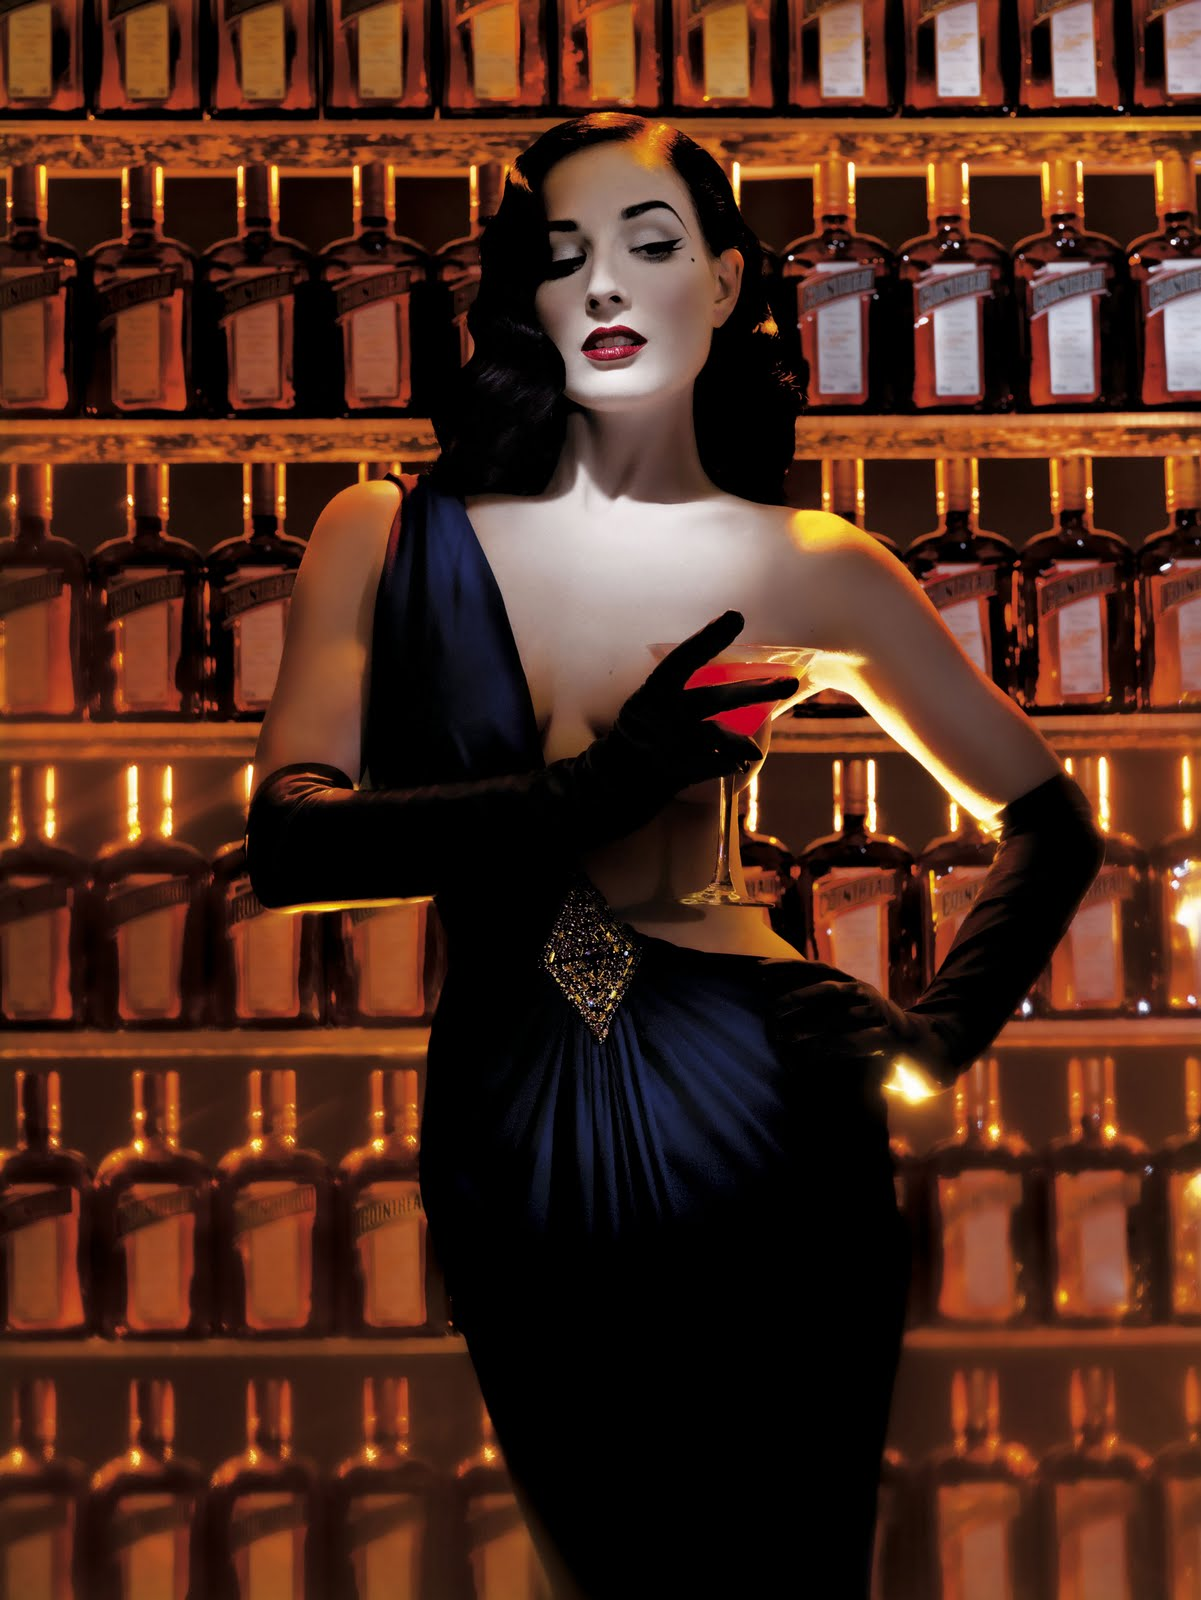 Dita Von Teese and the Cointreau Teese. © Cointreau Corp.